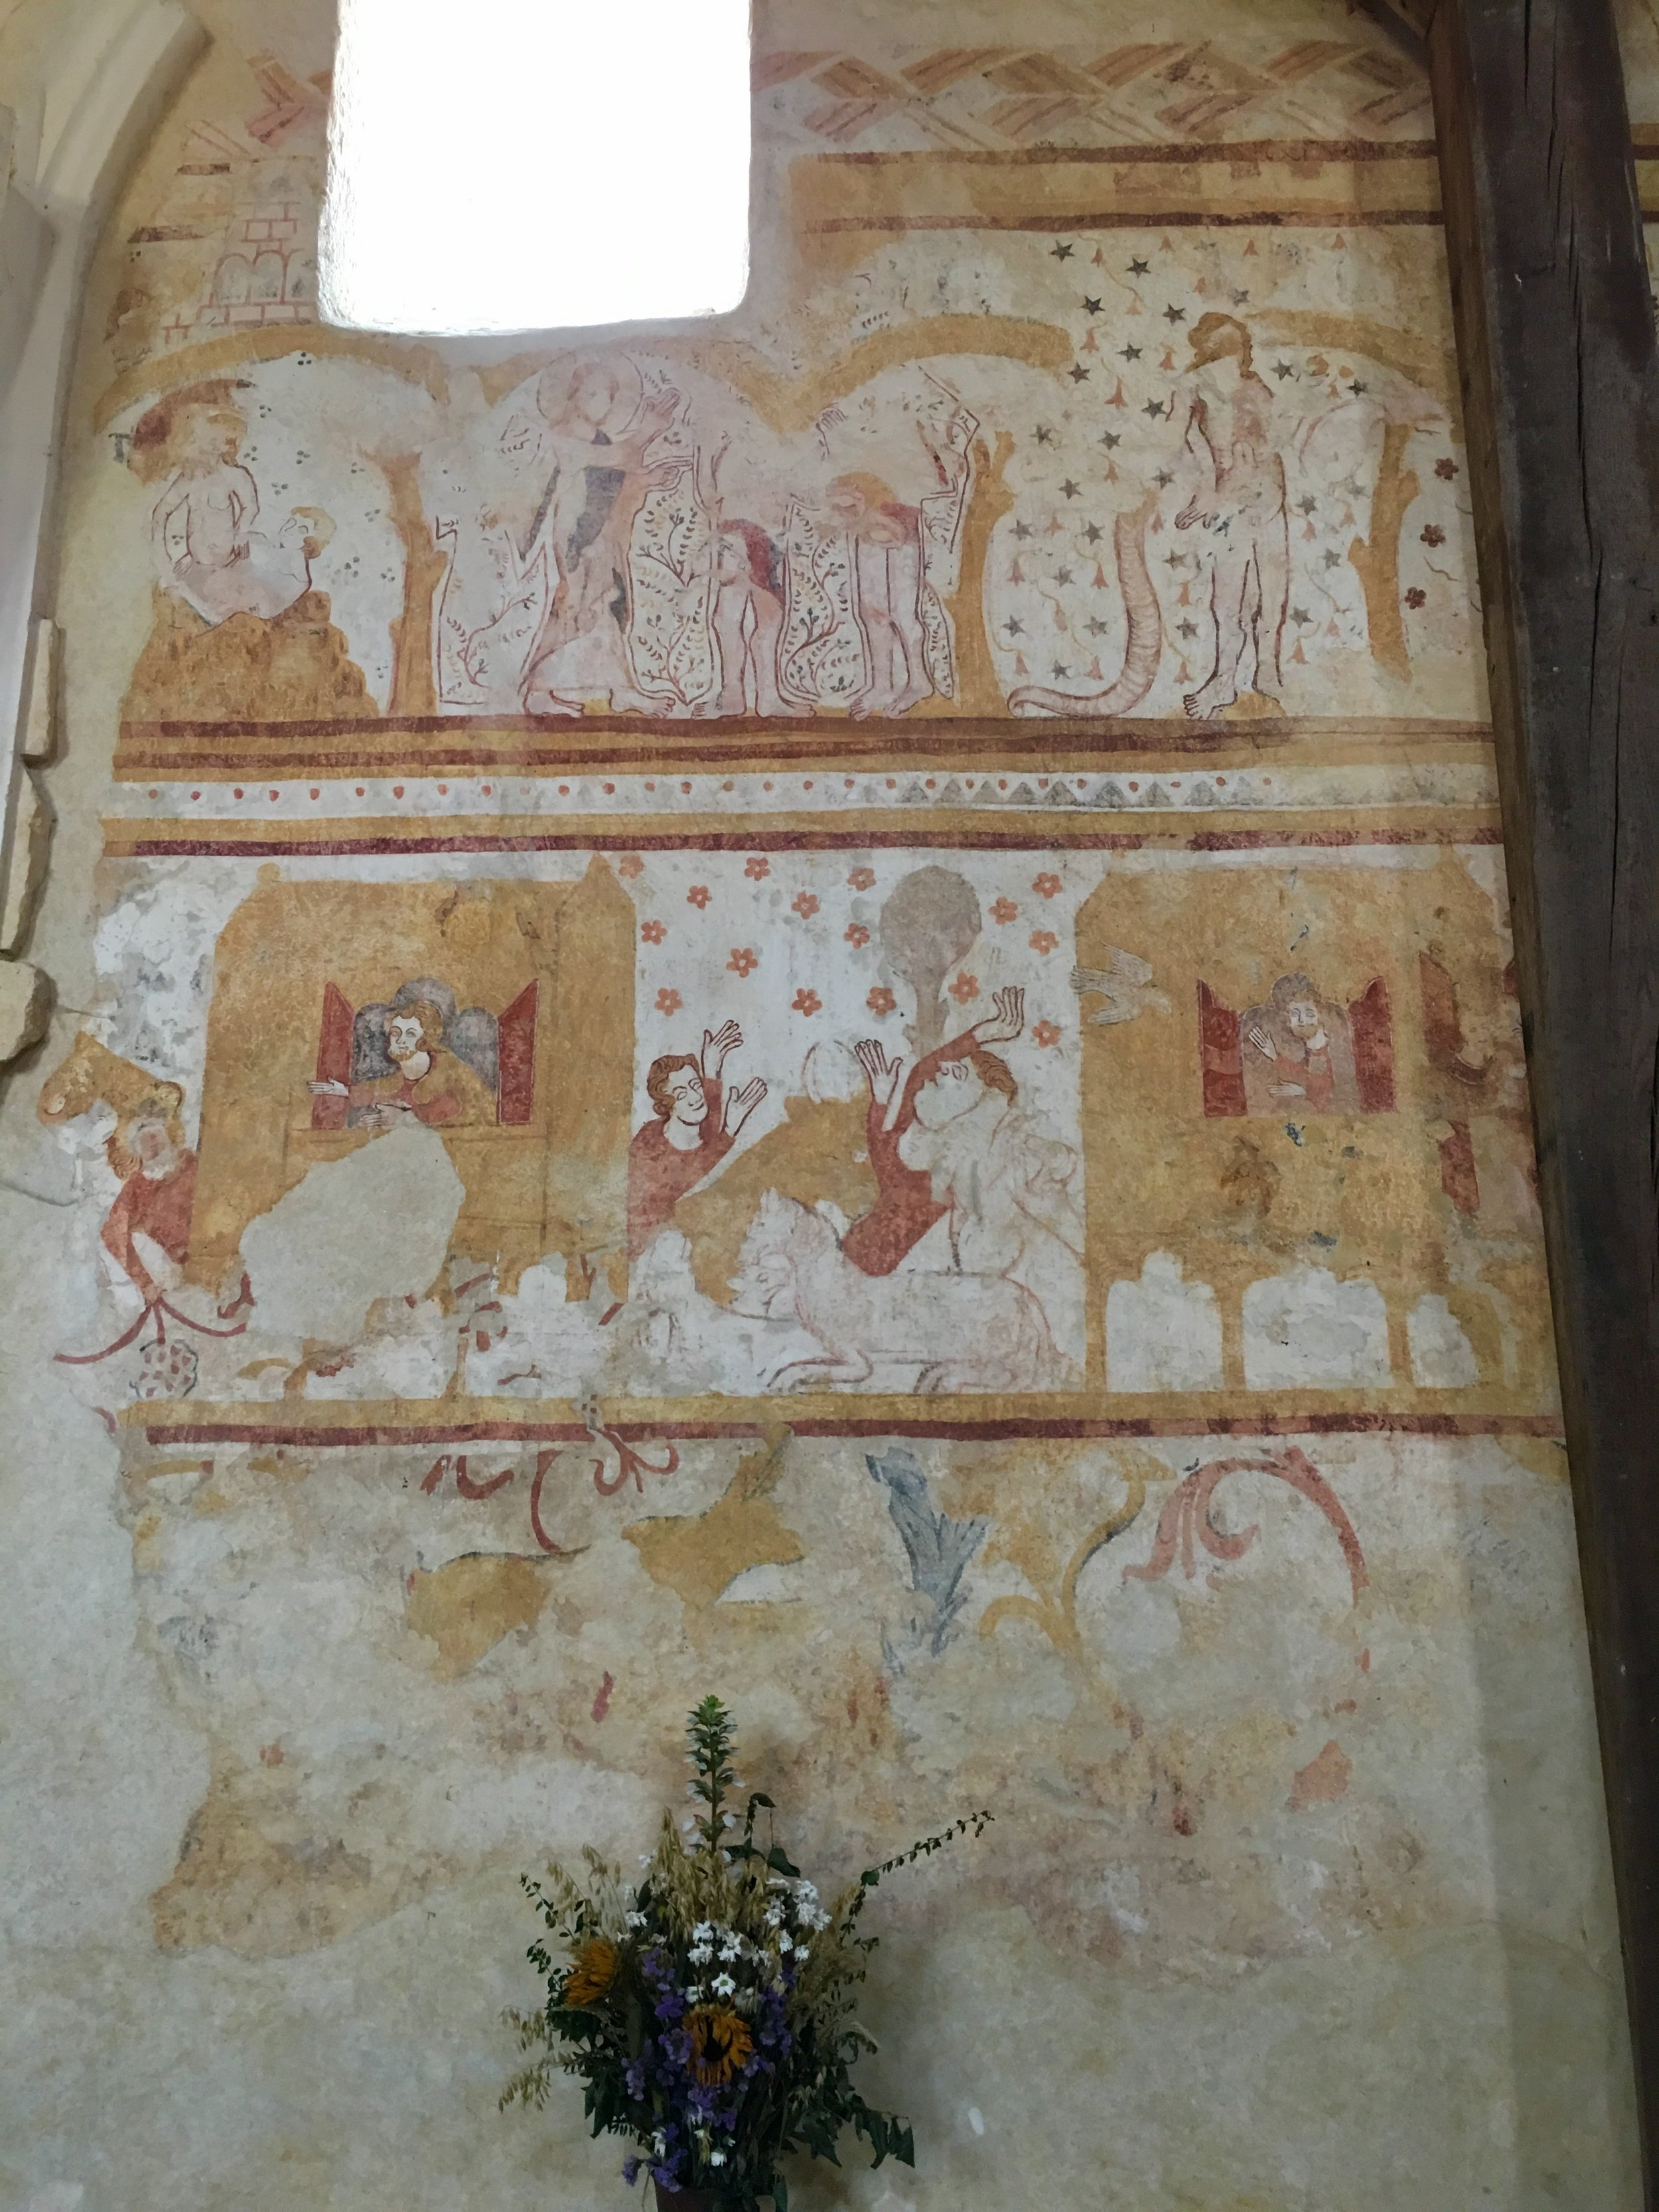 Late 13th century frescoes on the south wall of Eglise St. Pierre, depicting episodes from the Book of Genesis (photograph J. Cook)